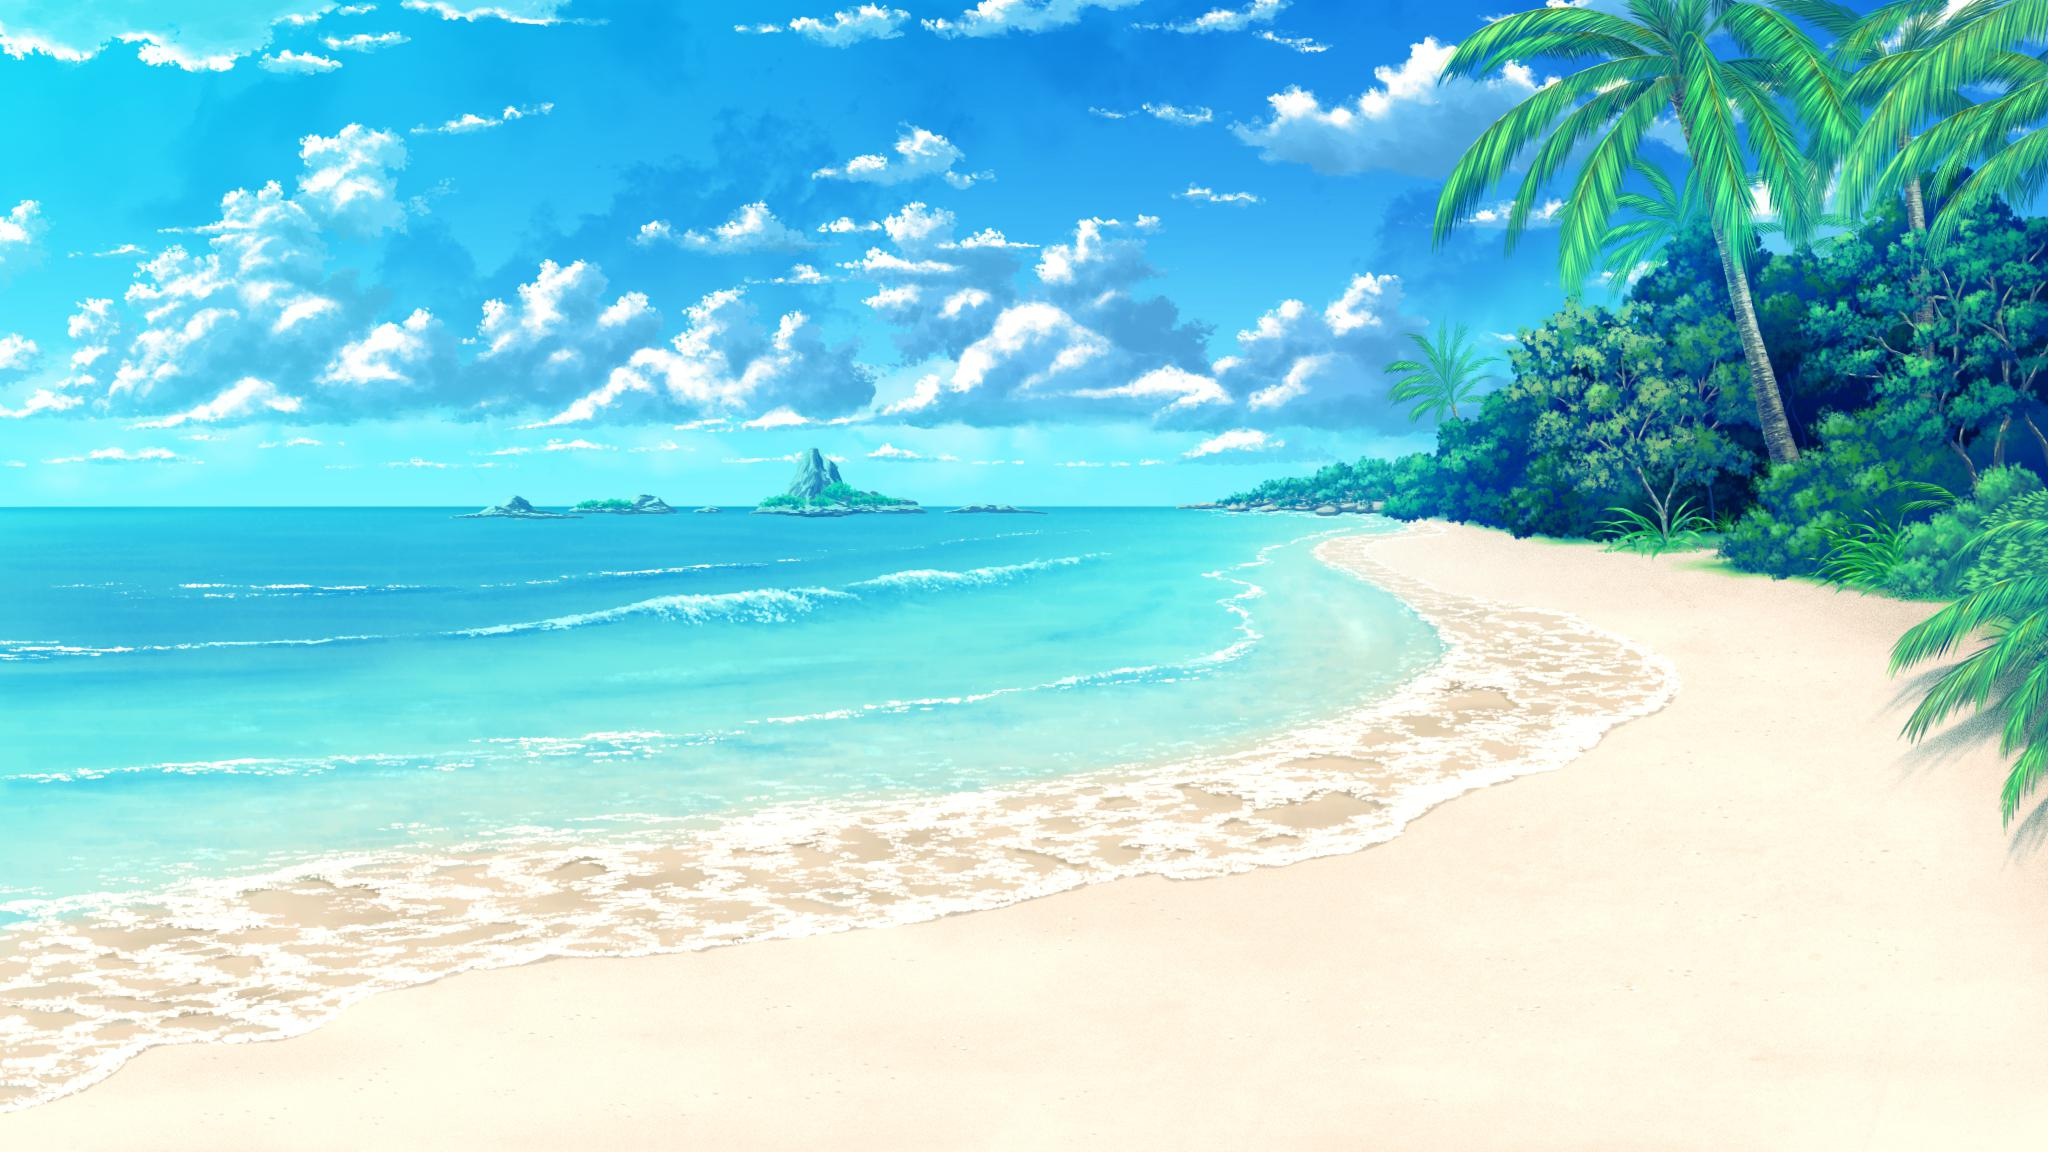 Anime Beach Background Page 1